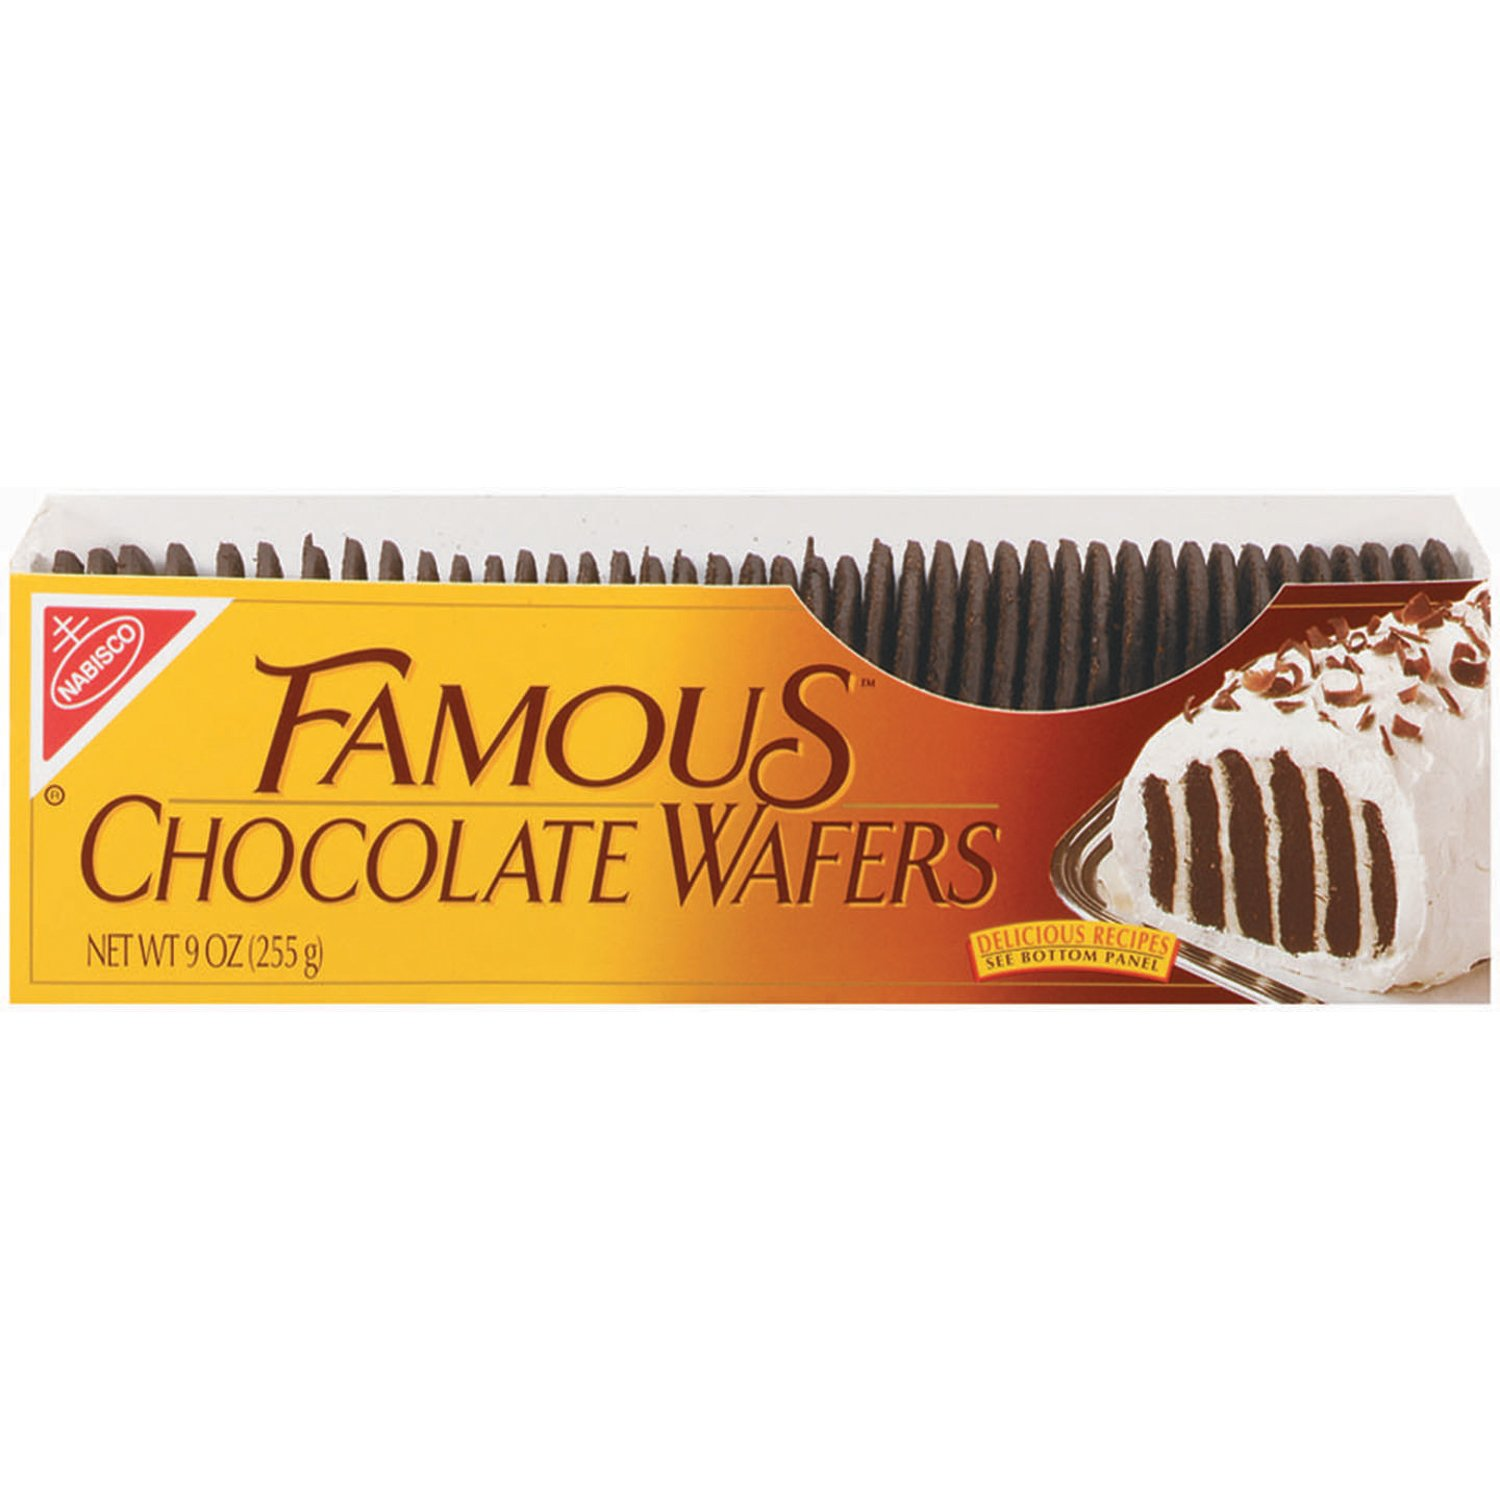 Famous Chocolate Wafers Chocolate Cookies, 9 Ounce by Nabisco